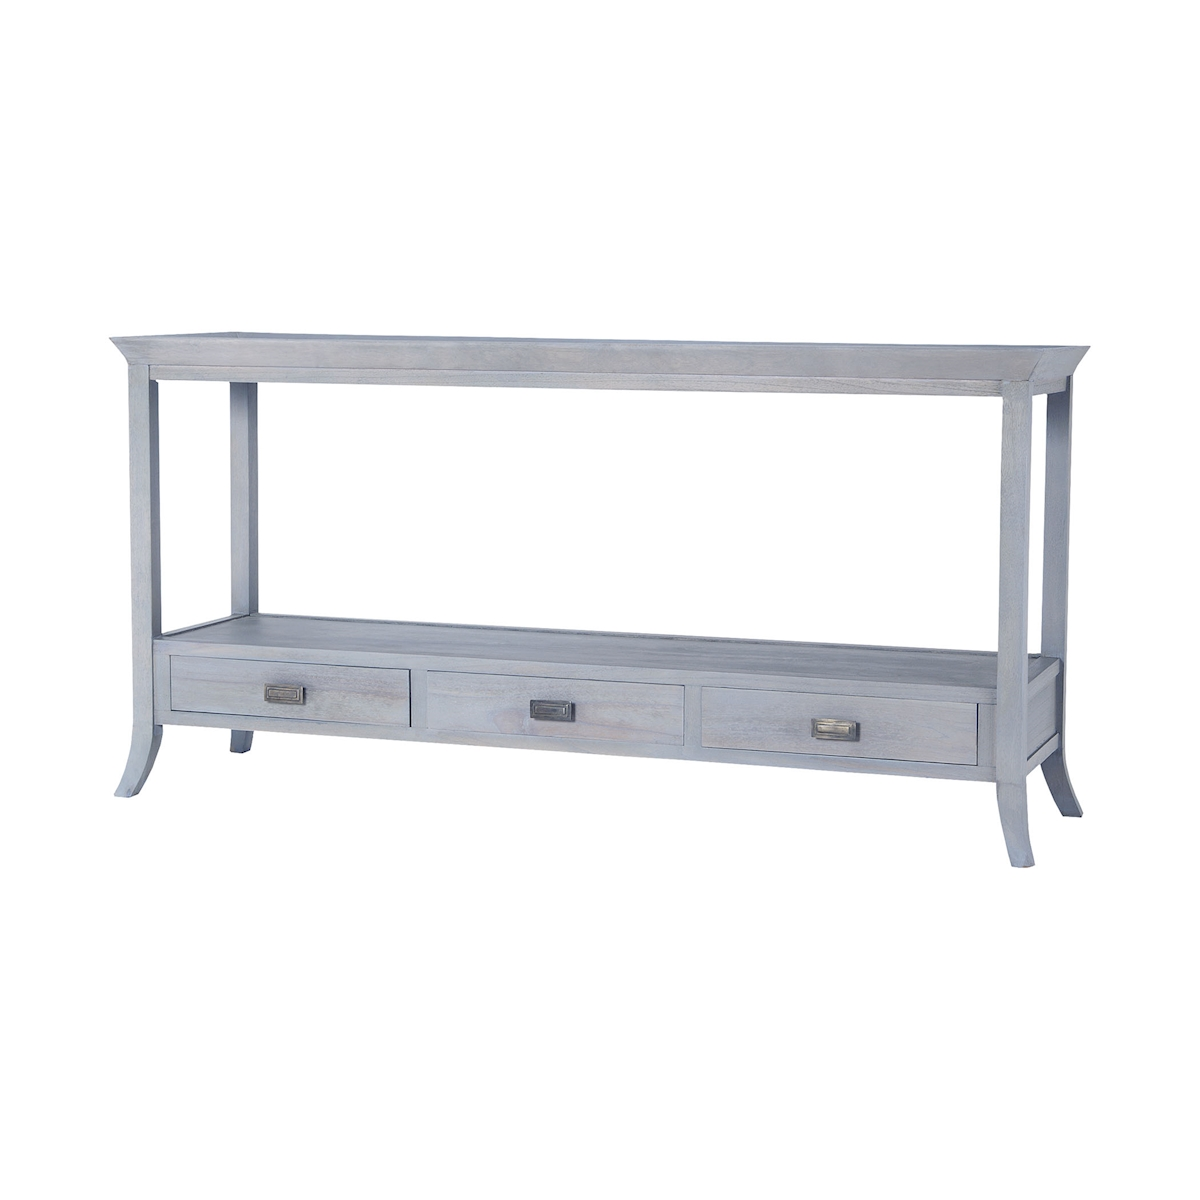 Tamara Sofa Console in Gravesend Grey 7011-310 | ELK Home